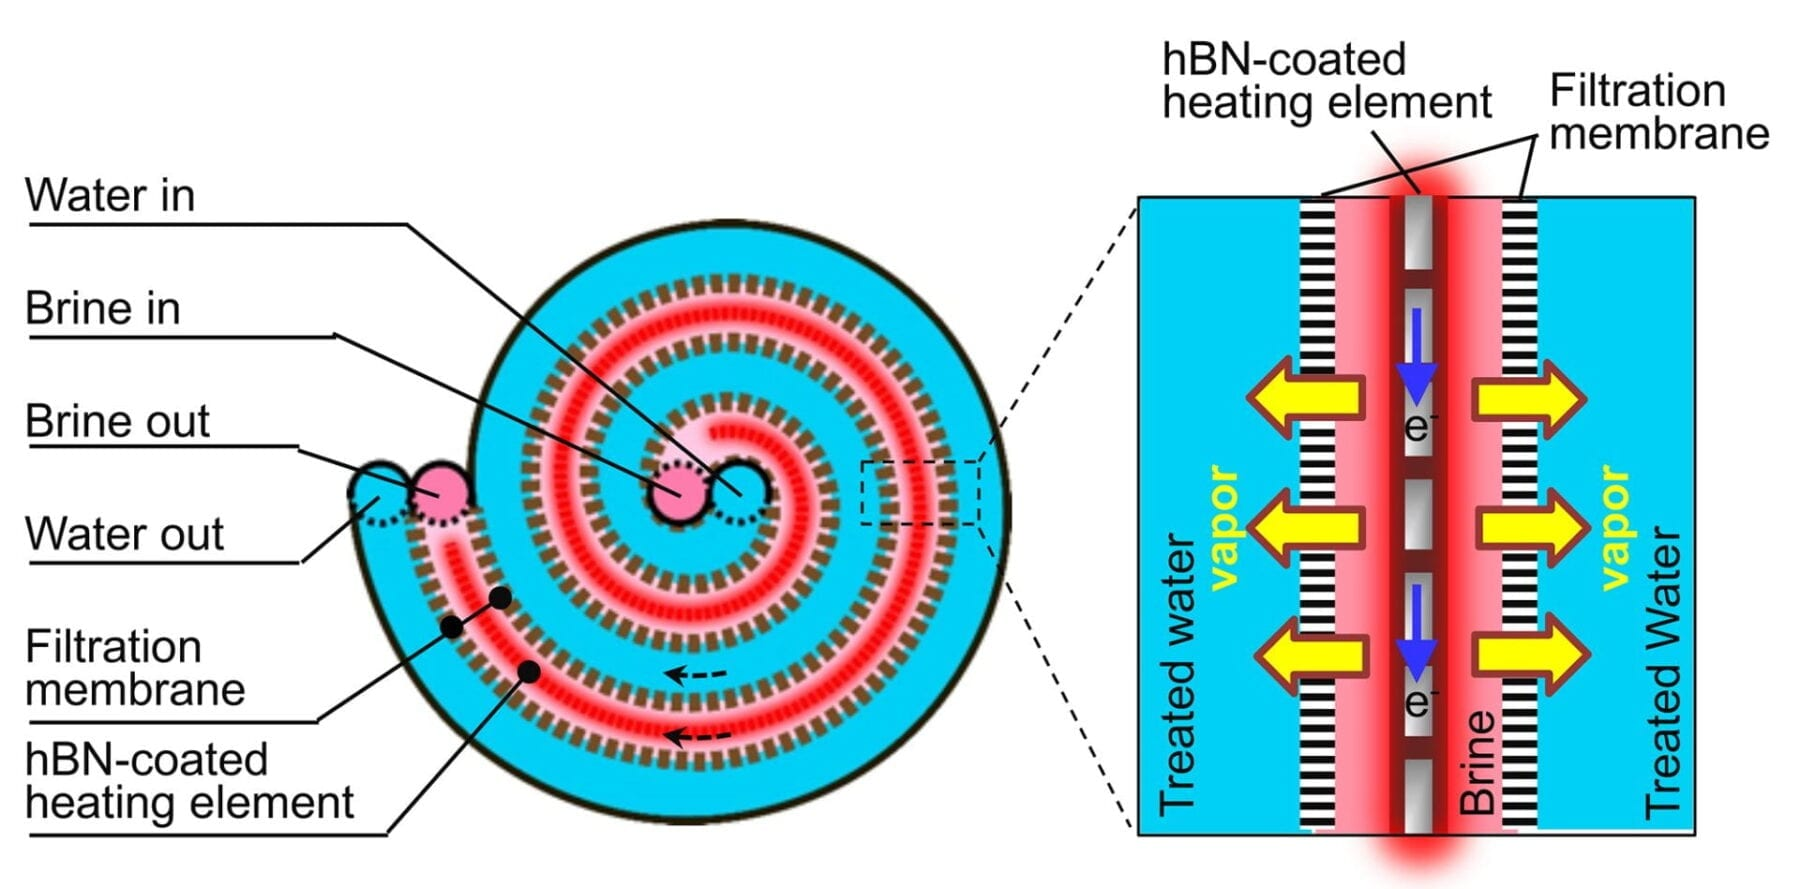 Rice University's desalination technology for hypersaline brine features a central passage for heated brine that is sandwiched between two membranes. A stainless steel heating element produces fresh, salt-free water by driving water vapor through each membrane. A coating of the 2D nanomaterial hexagonal boron nitride (hBN) protects the heating element from the highly corrosive brine. (Image courtesy of Kuichang Zuo/Rice University)